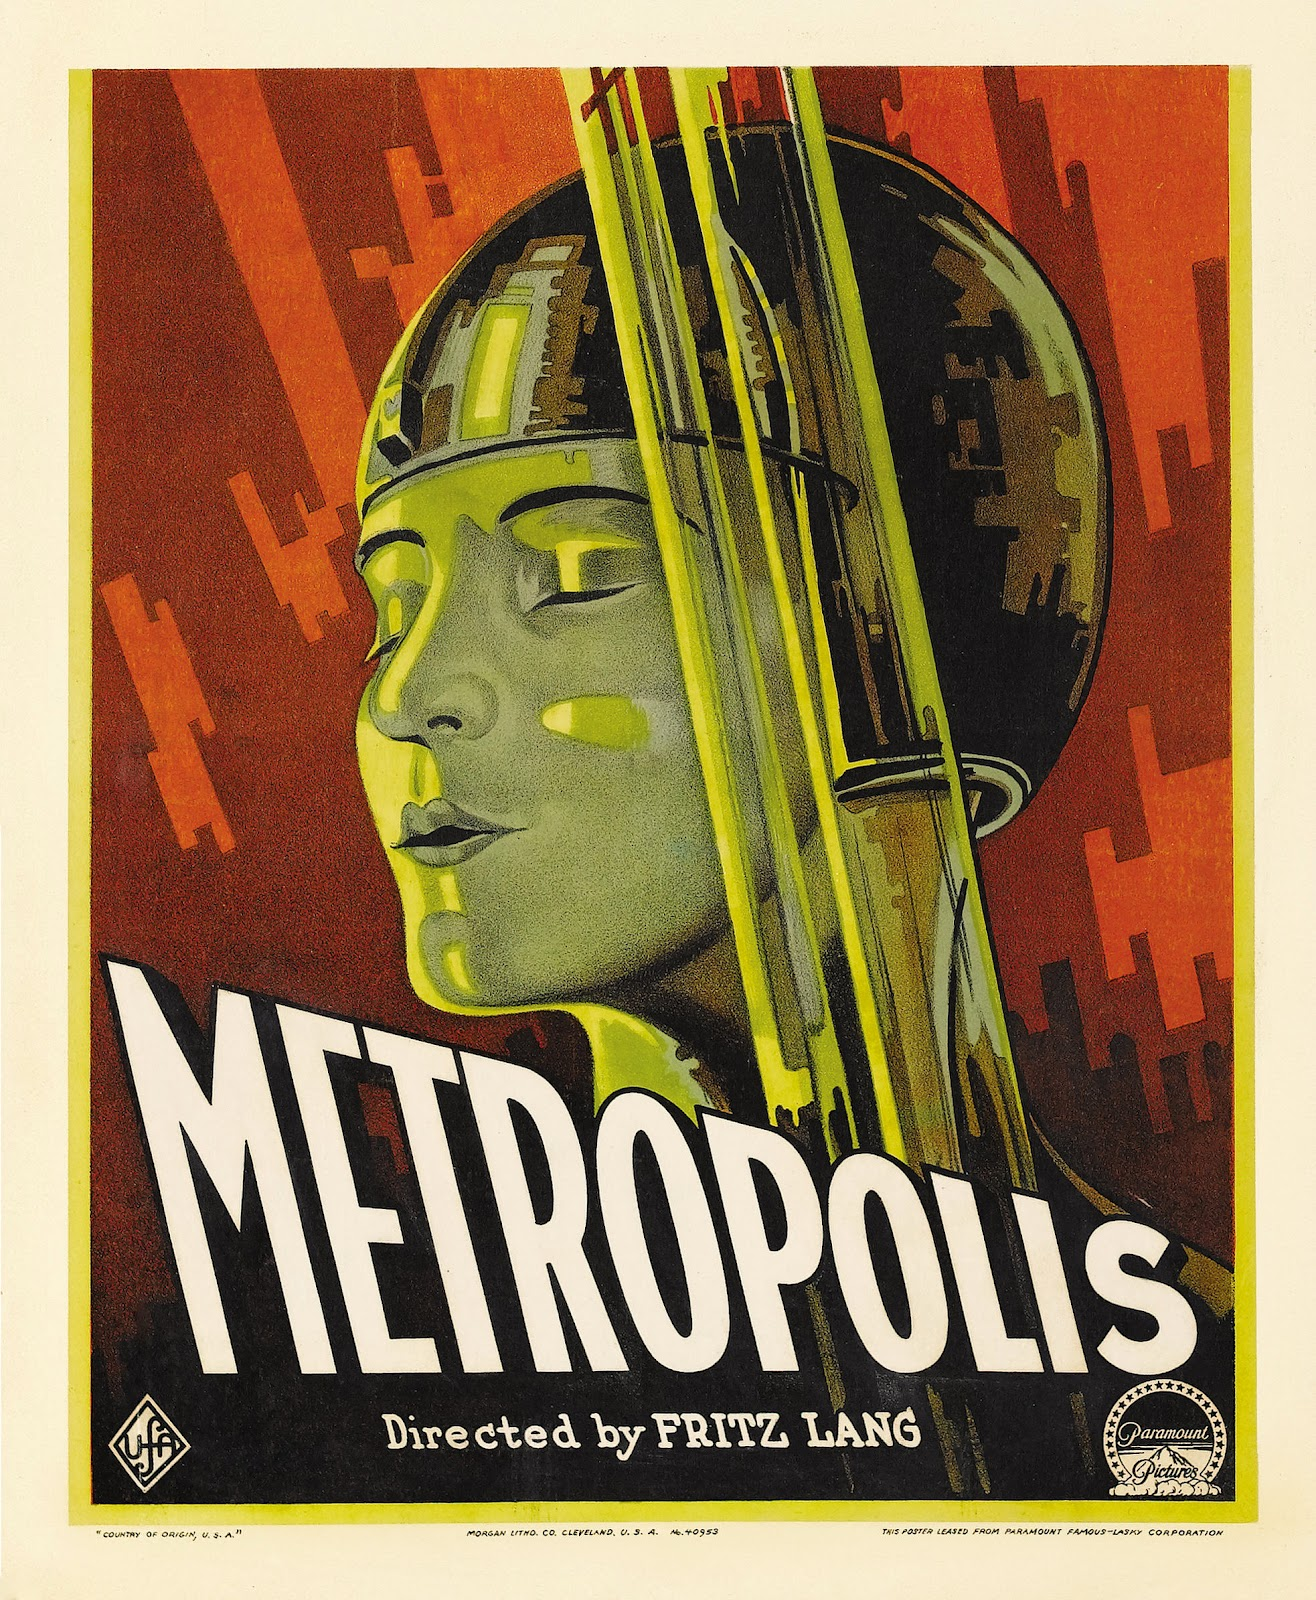 The geeky nerfherder movie poster art metropolis 1927 for Schlafsofa 2 m lang